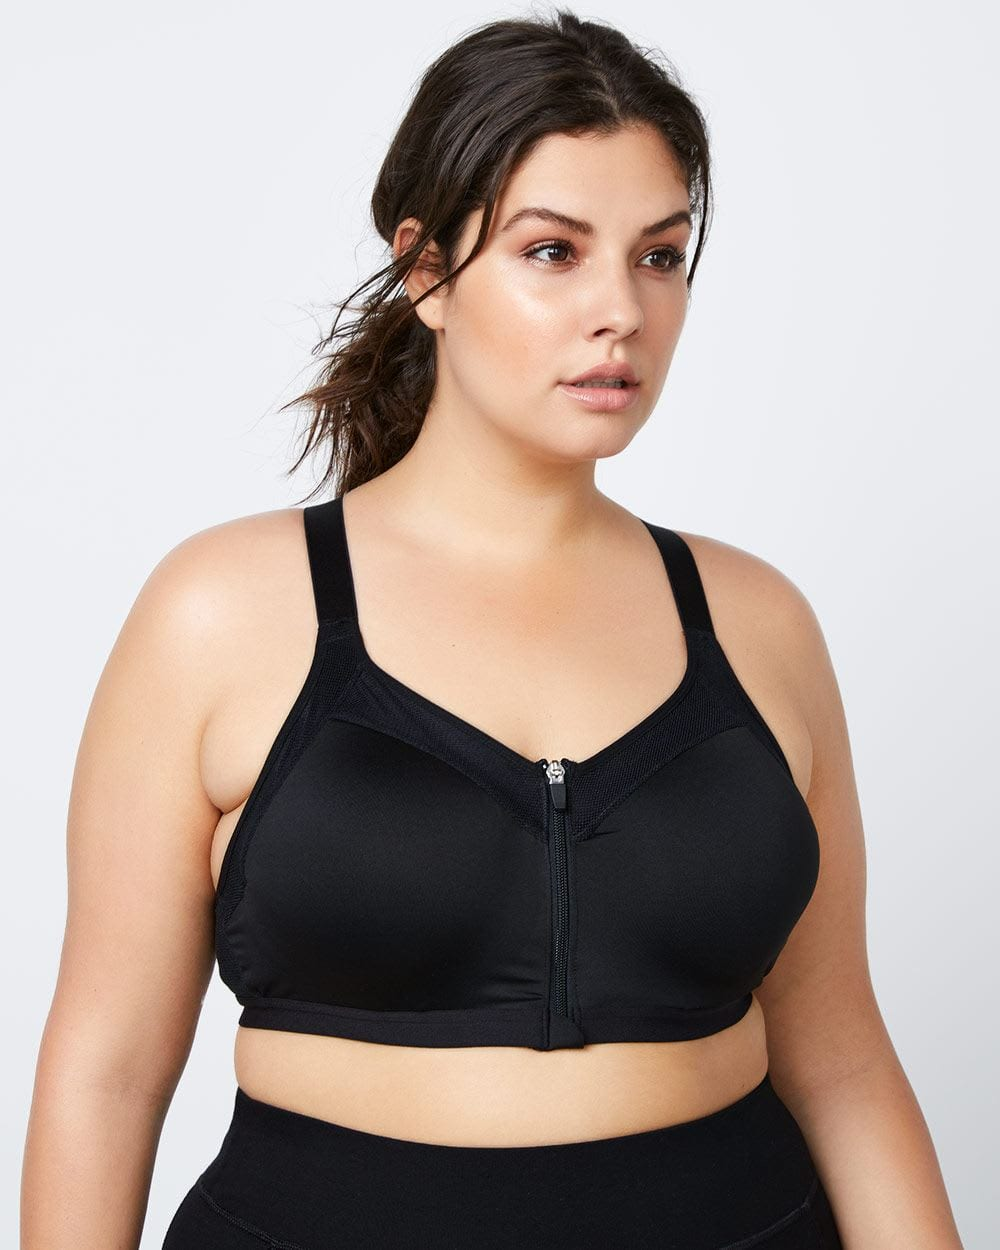 a43f53506d3e5 Plus Size Sports Bra  Guide Choosing The Best One - Foreign policy